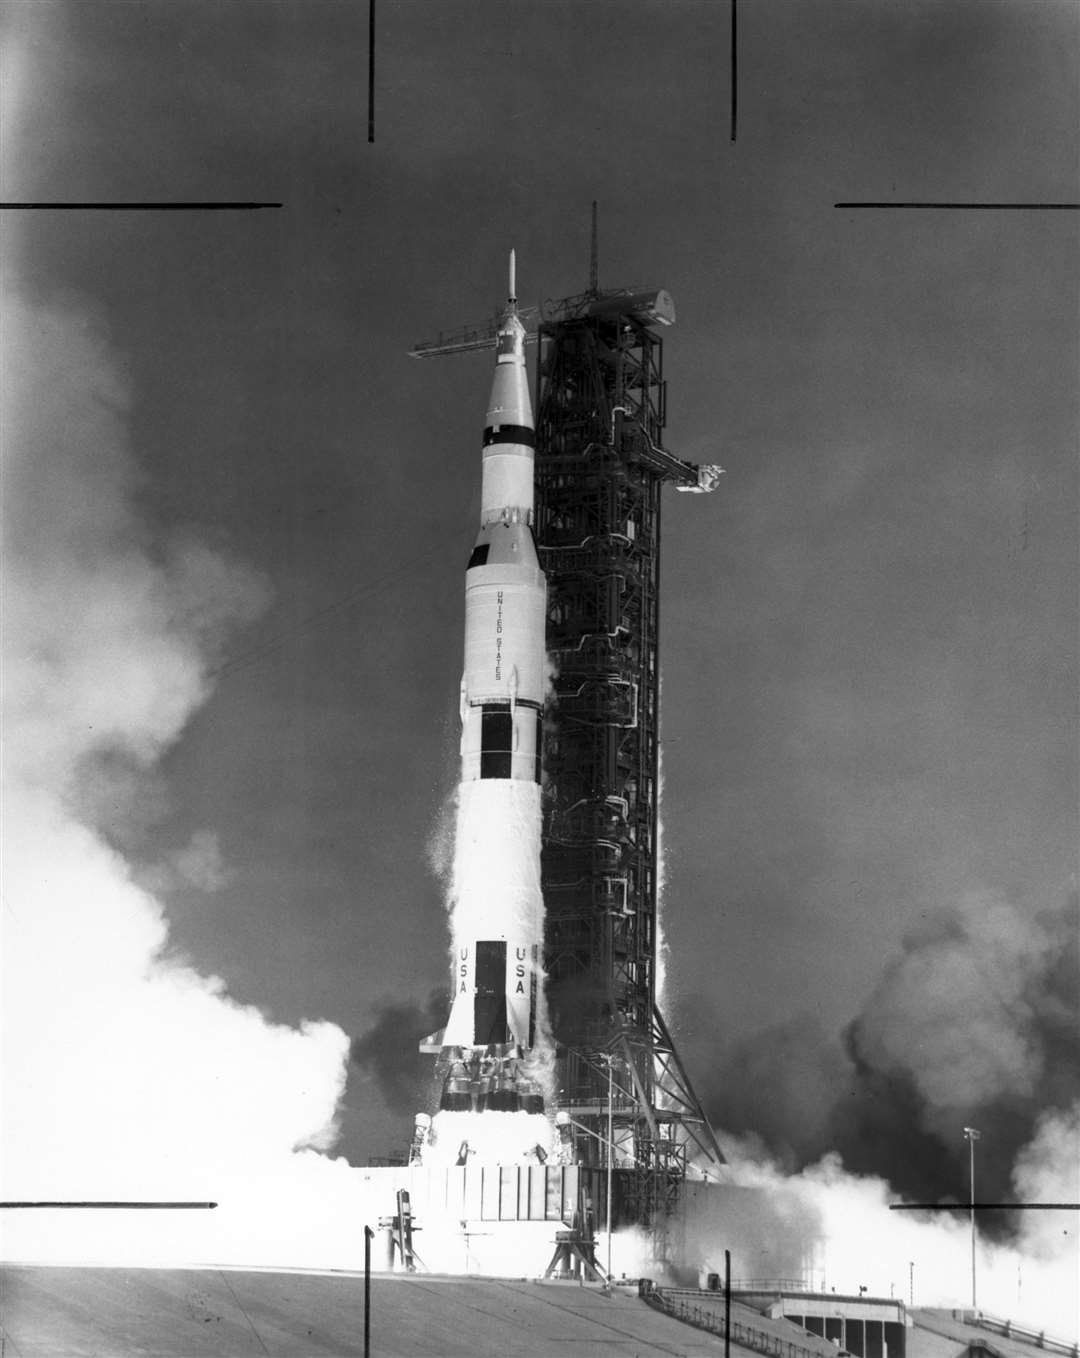 The Saturn V launch vehicle, developed by the Marshall Space Flight Center (MSFC) under the direction of Dr. Wernher von Braun, lifts off from the Kennedy Space Center (KSC), Florida carrying the Apollo 11 spacecraft and crew. Picture: NASA (14042051)